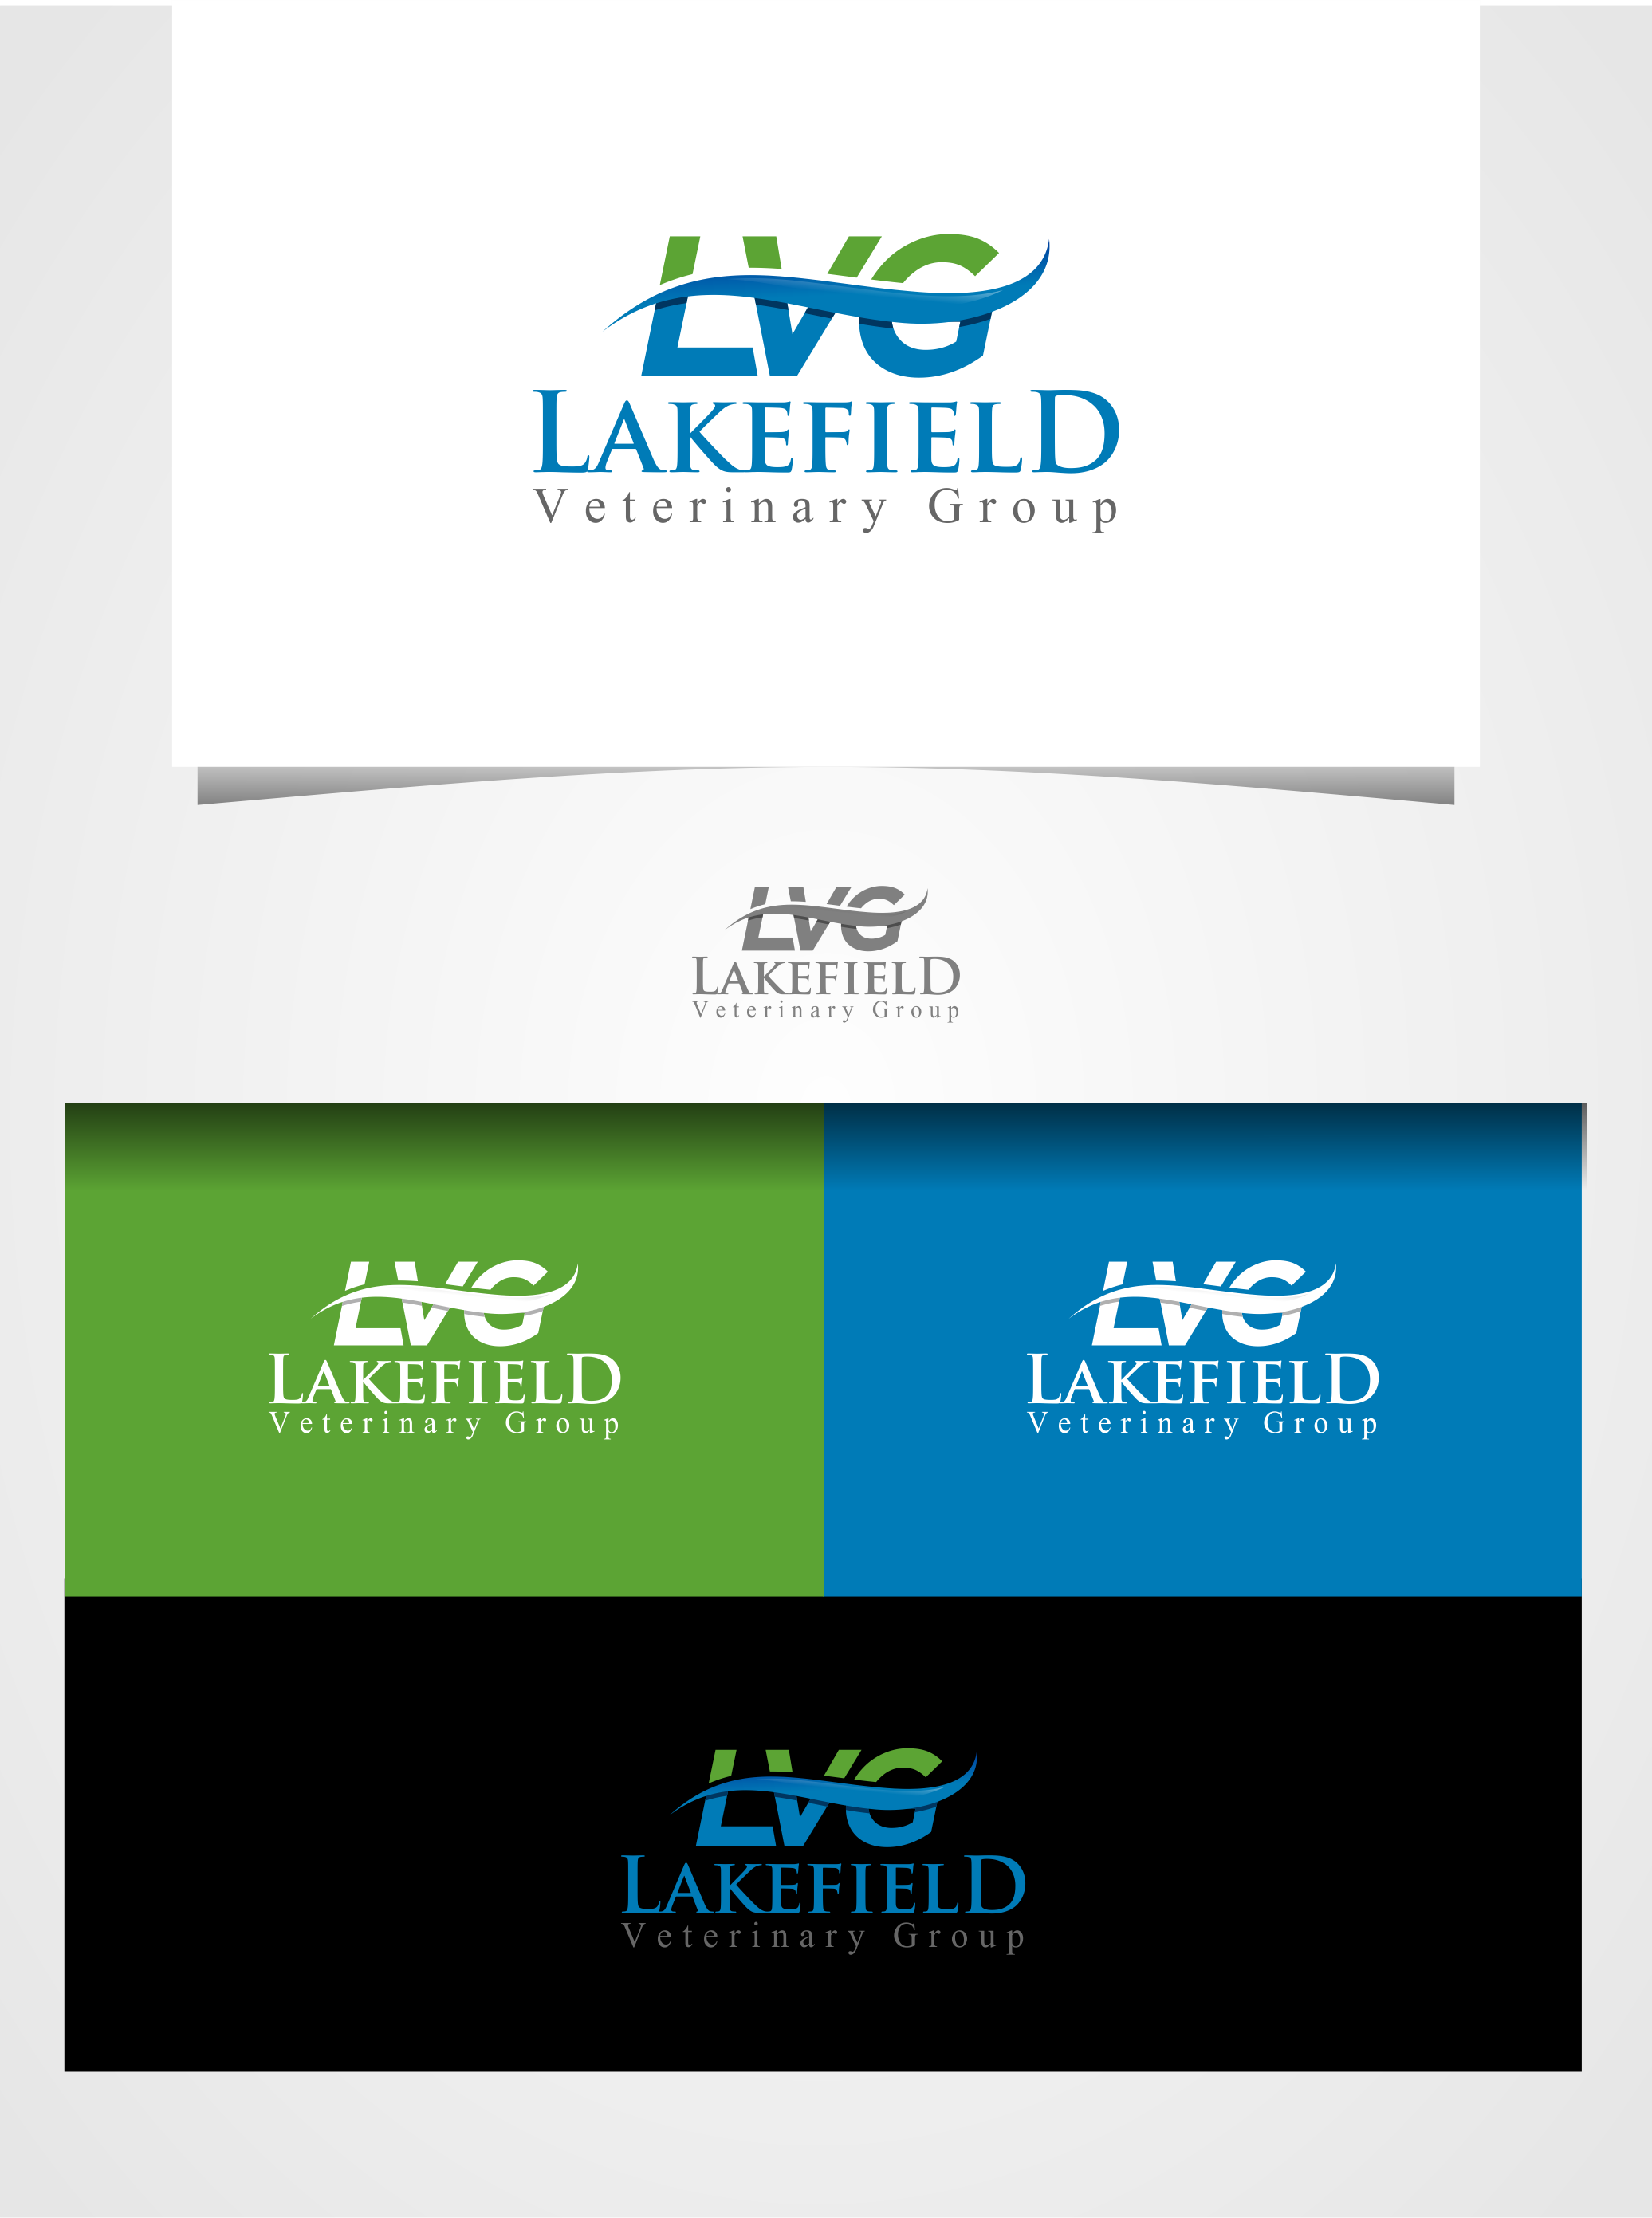 Logo Design by Raymond Garcia - Entry No. 70 in the Logo Design Contest Inspiring Logo Design for Lakefield Veterinary Group.